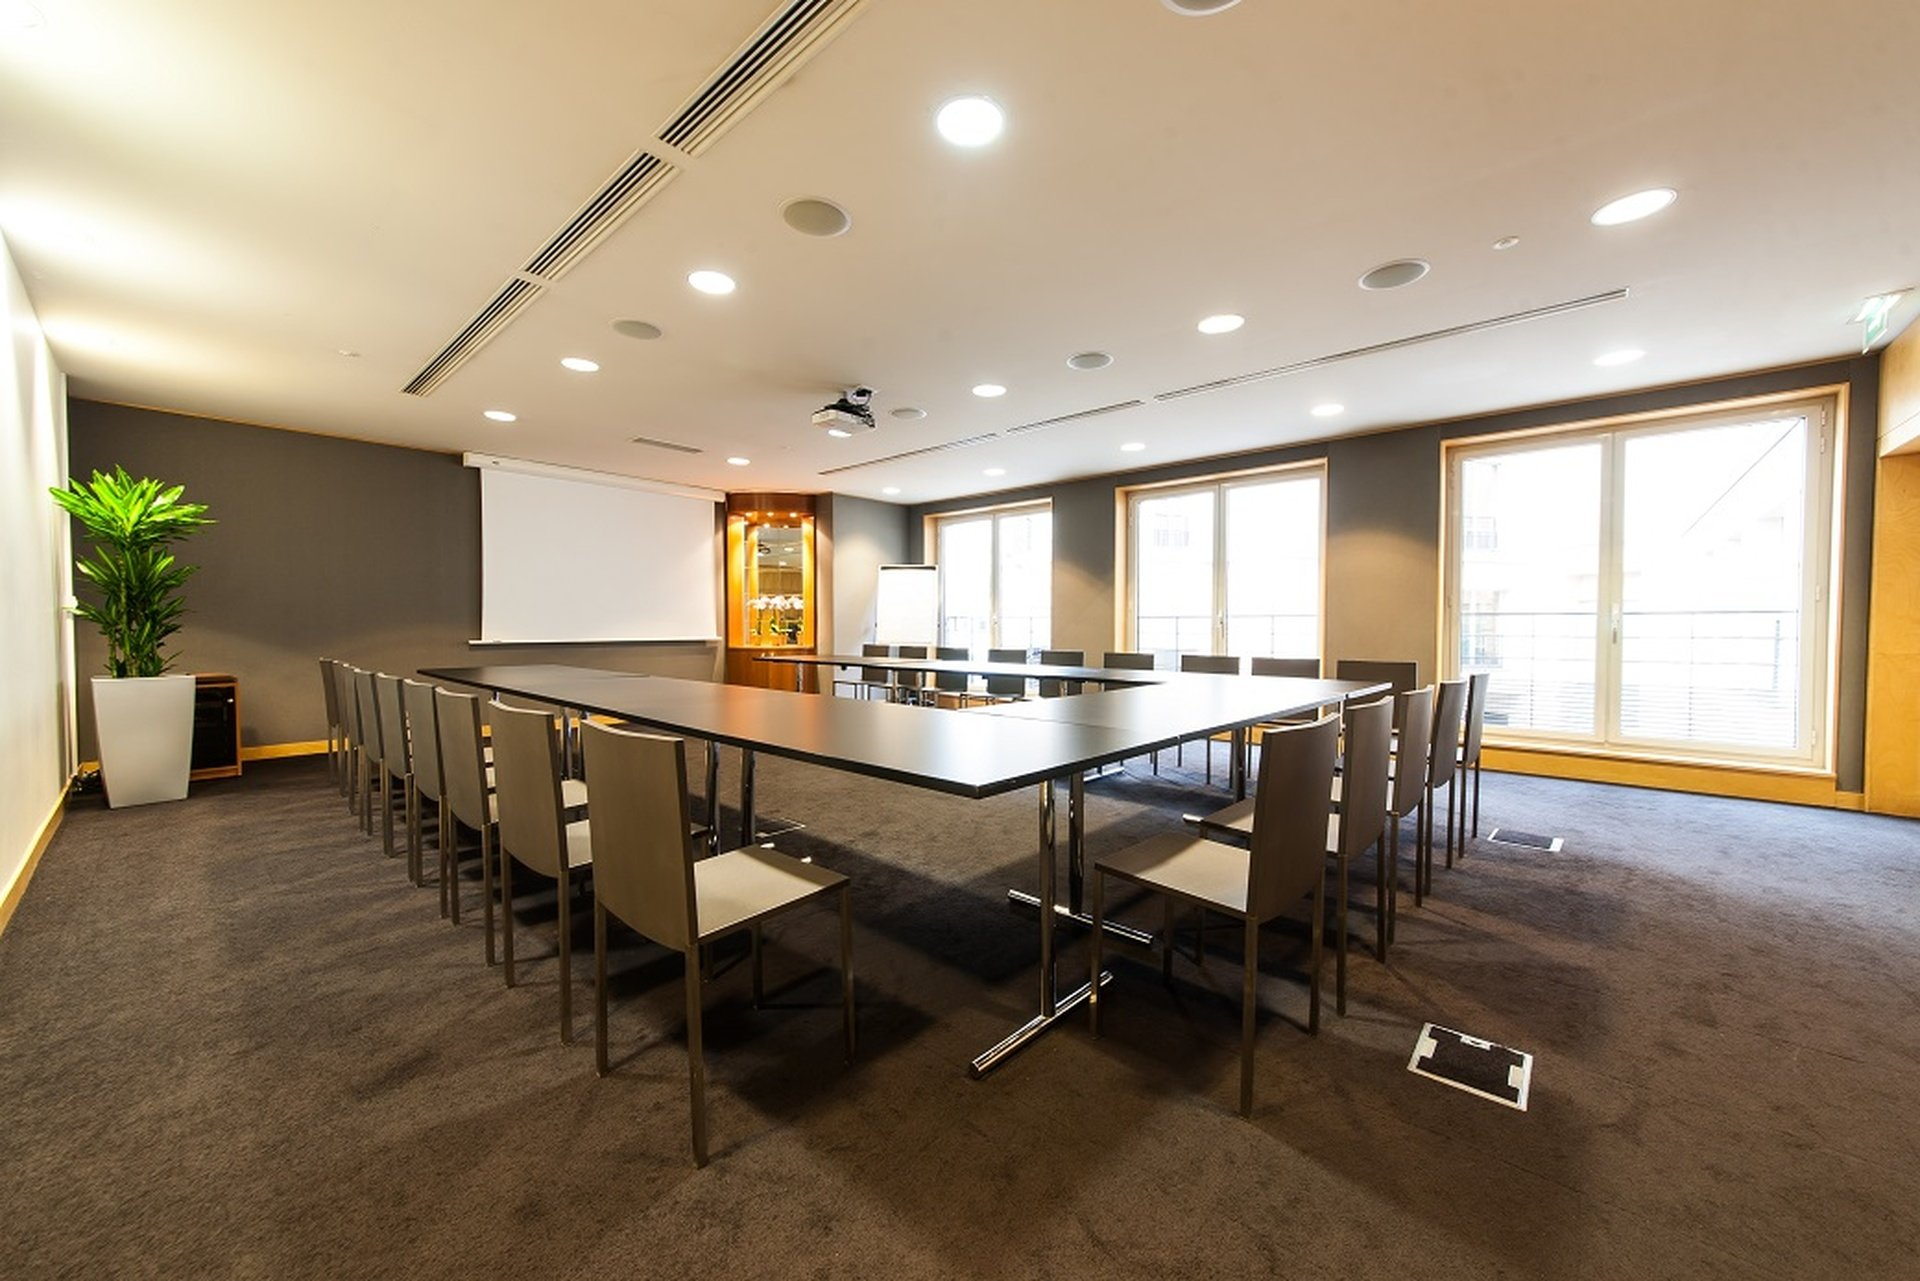 Paris corporate event venues Meeting room SERVCORP - Edouard VII Conference Center - Tokyo Meeting room image 0